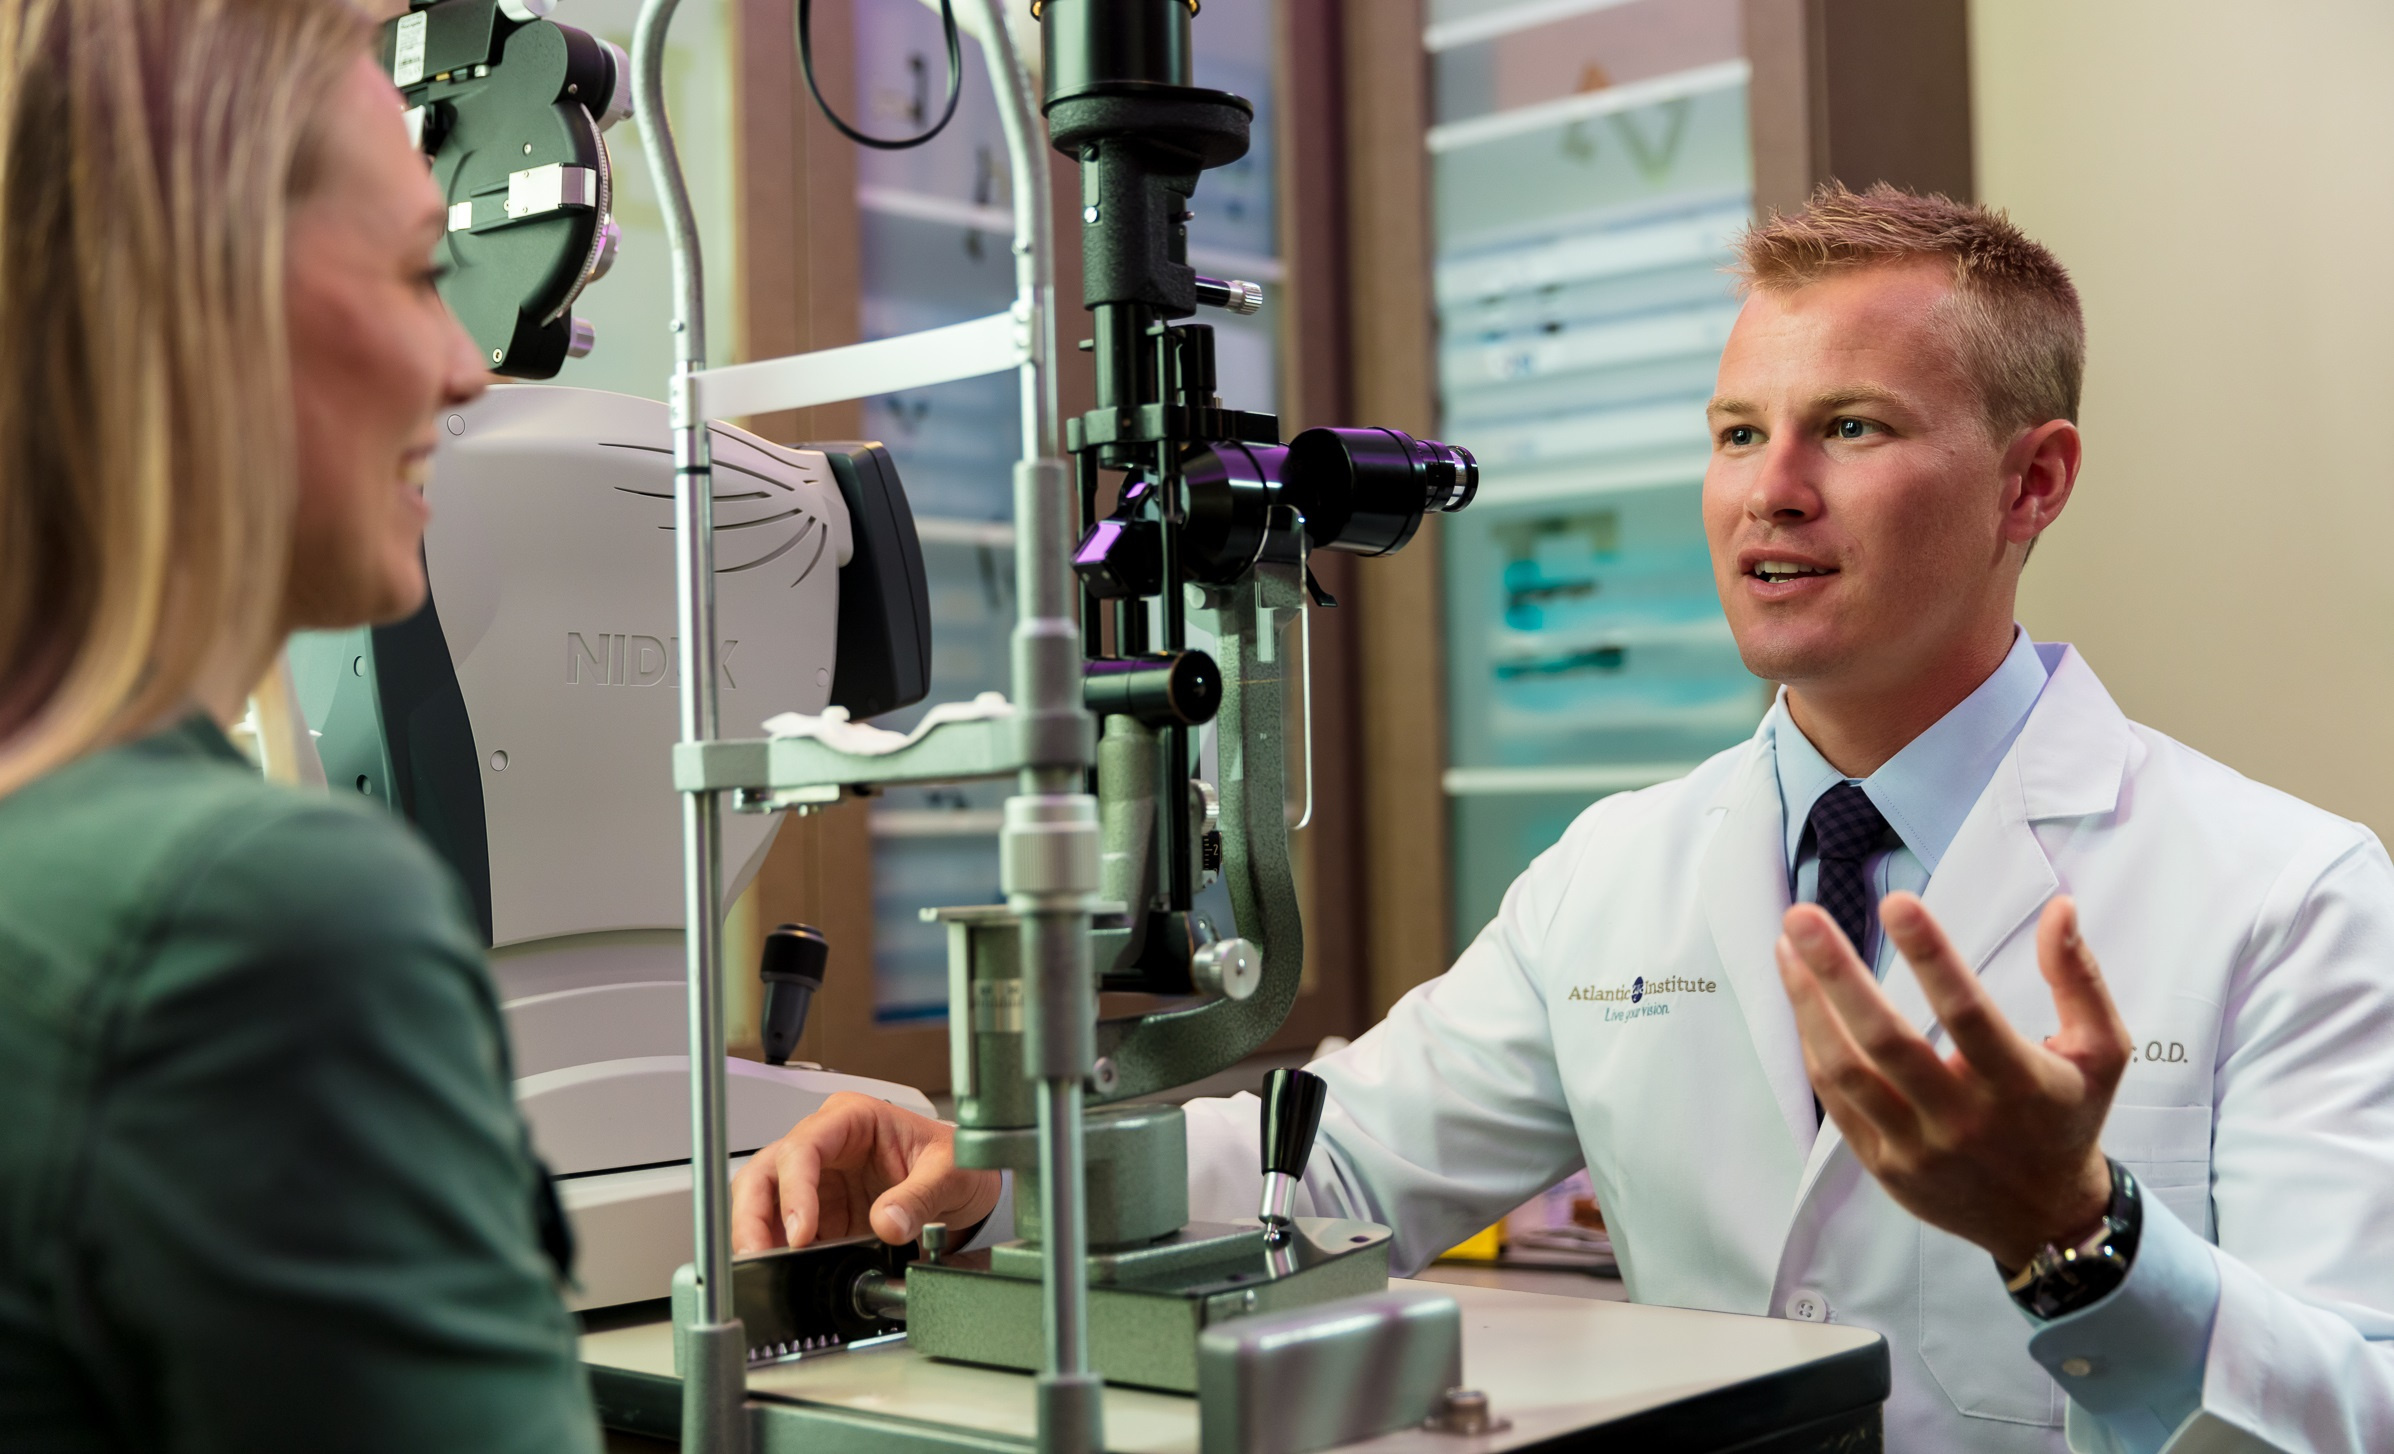 Discover the Best Eye Exams for Medical or Routine Care at Atlantic Eye Institute. We Offer Custom Contact Lense Fittings and Designer Eyeglasses